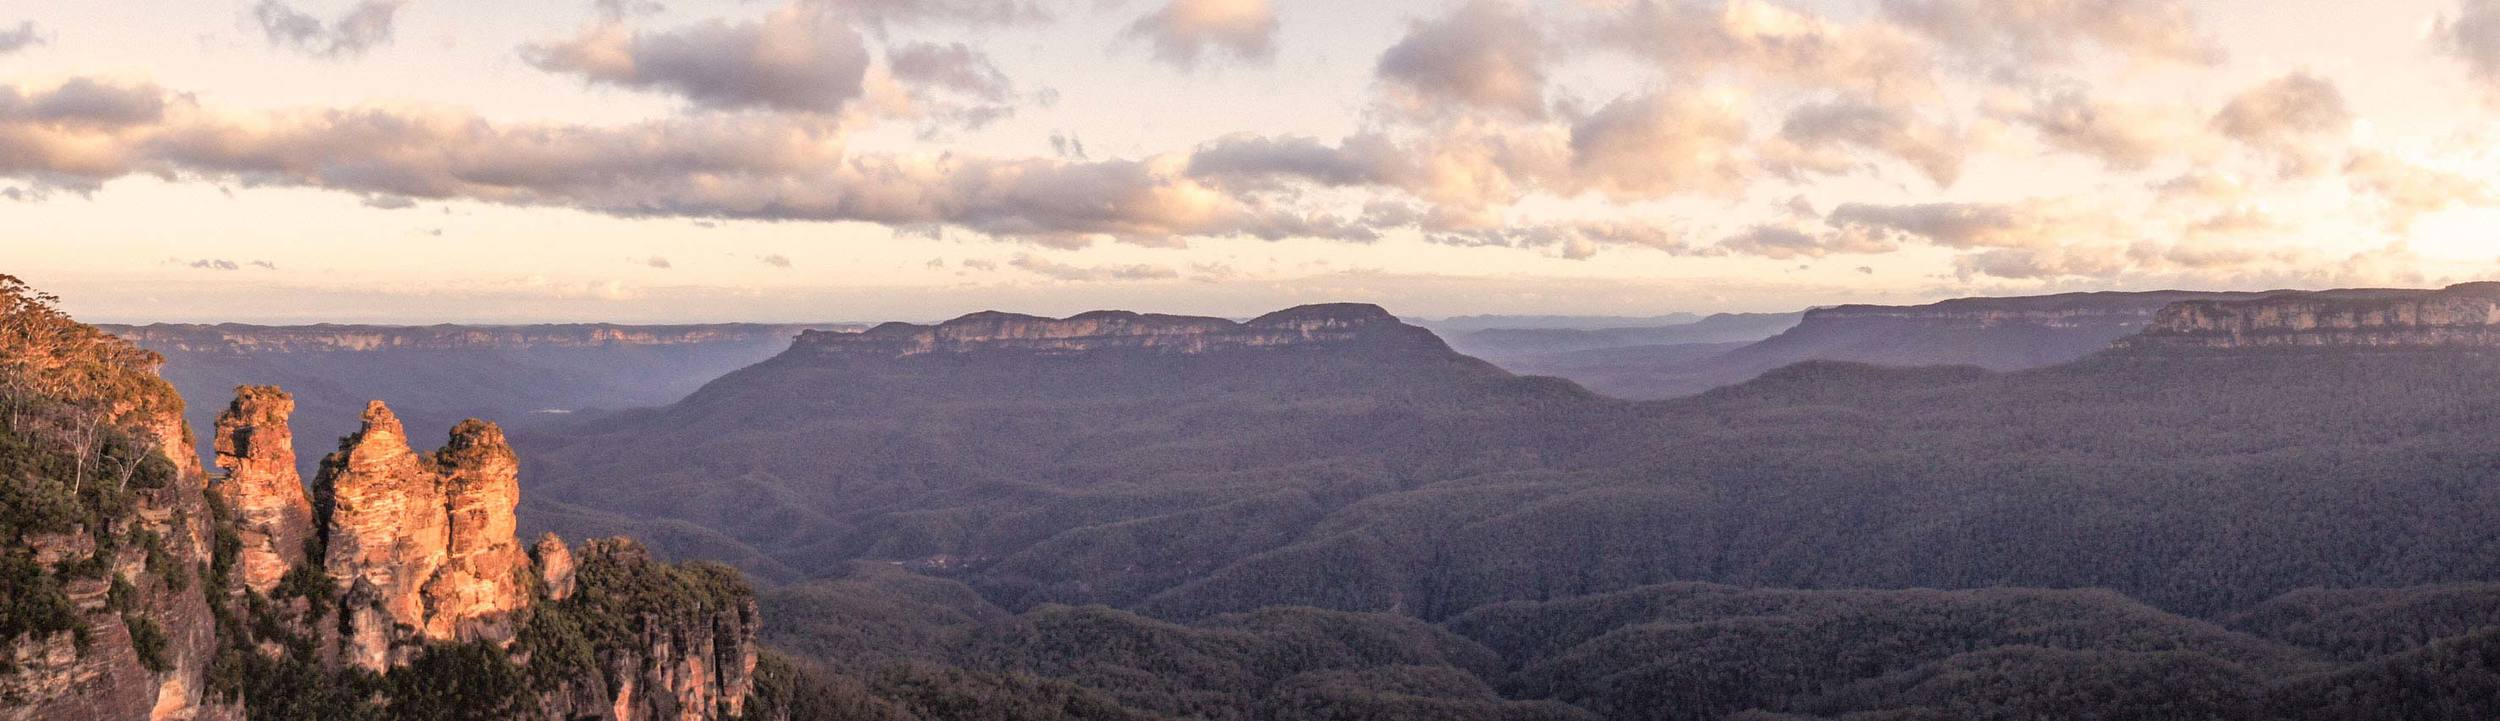 The Three Sisters - Jamison Valley View